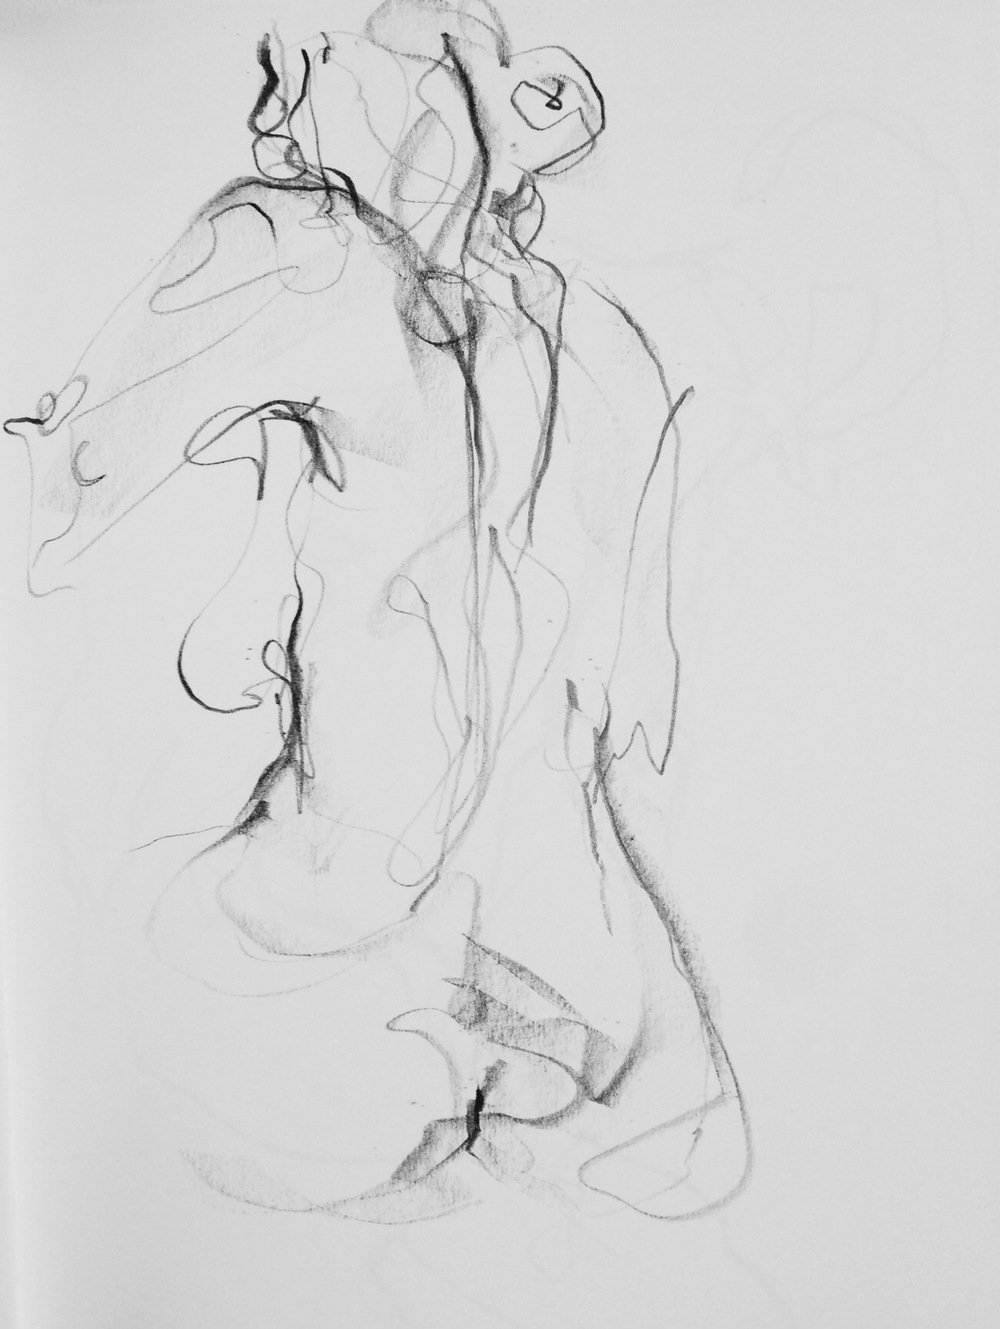 Life drawing 5min, by Tanleea